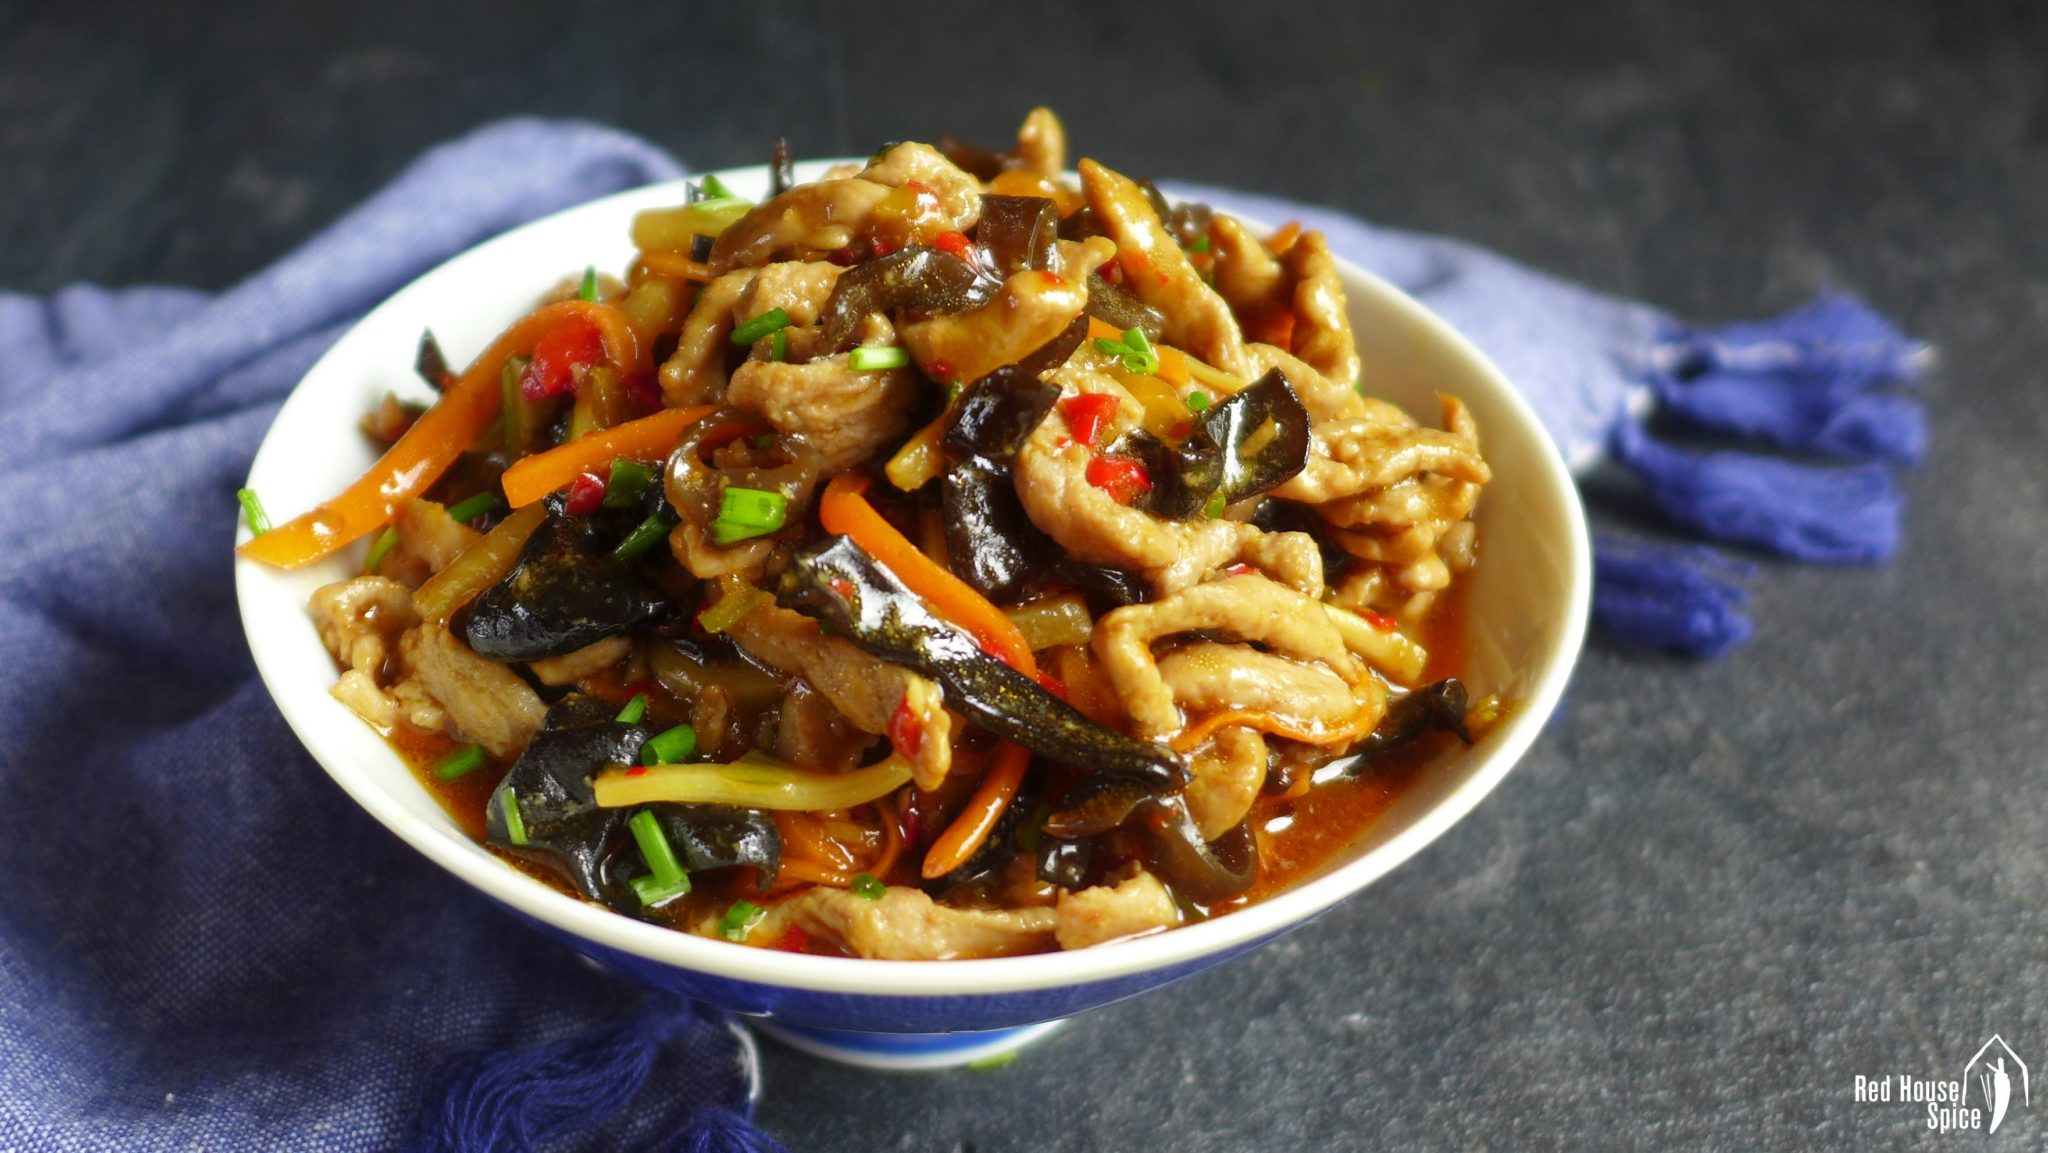 Sichuan Shredded Chicken